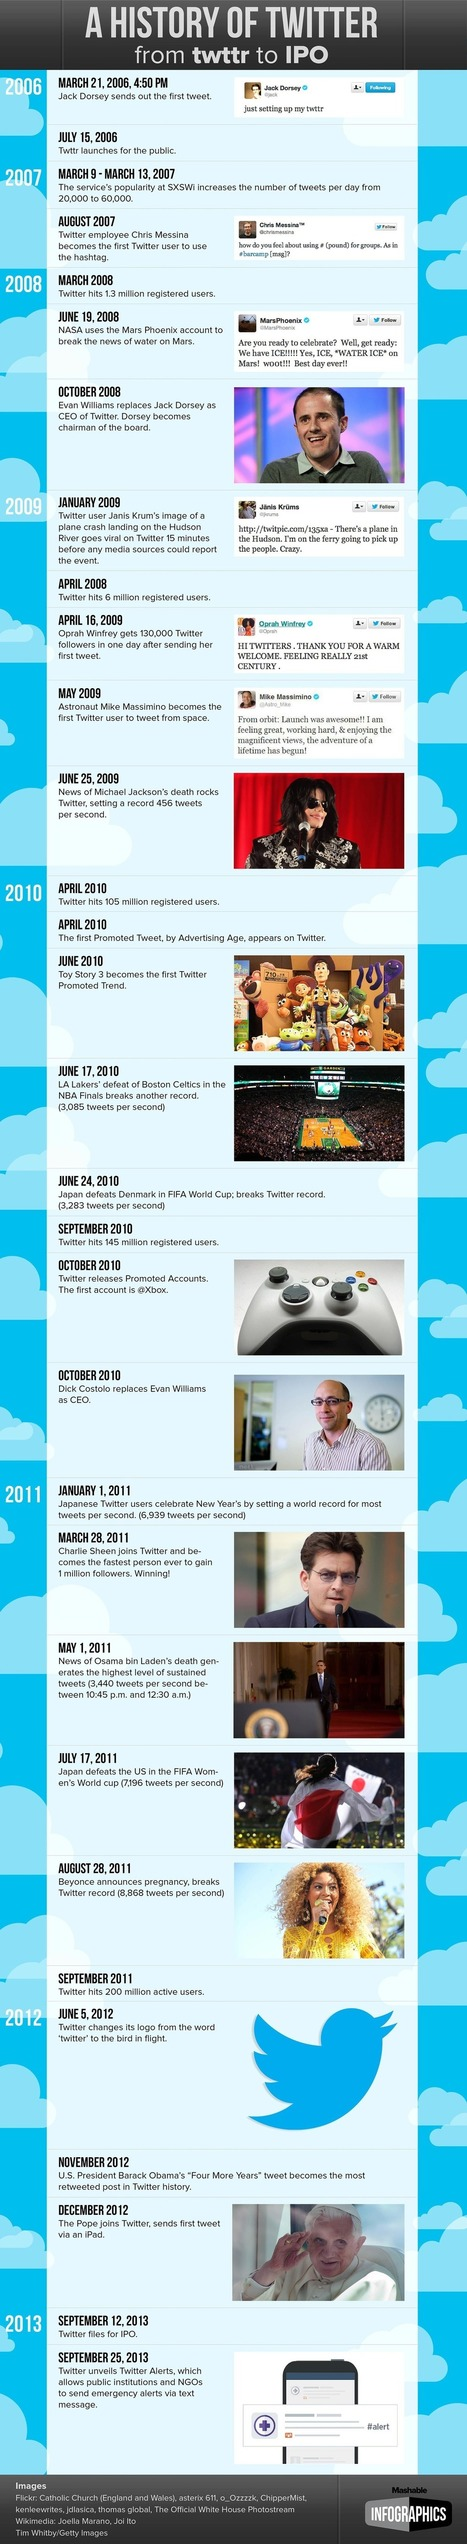 A Brief History Of Twitter [Infographic] - Social Media X | Social Media: Getting Started | Scoop.it